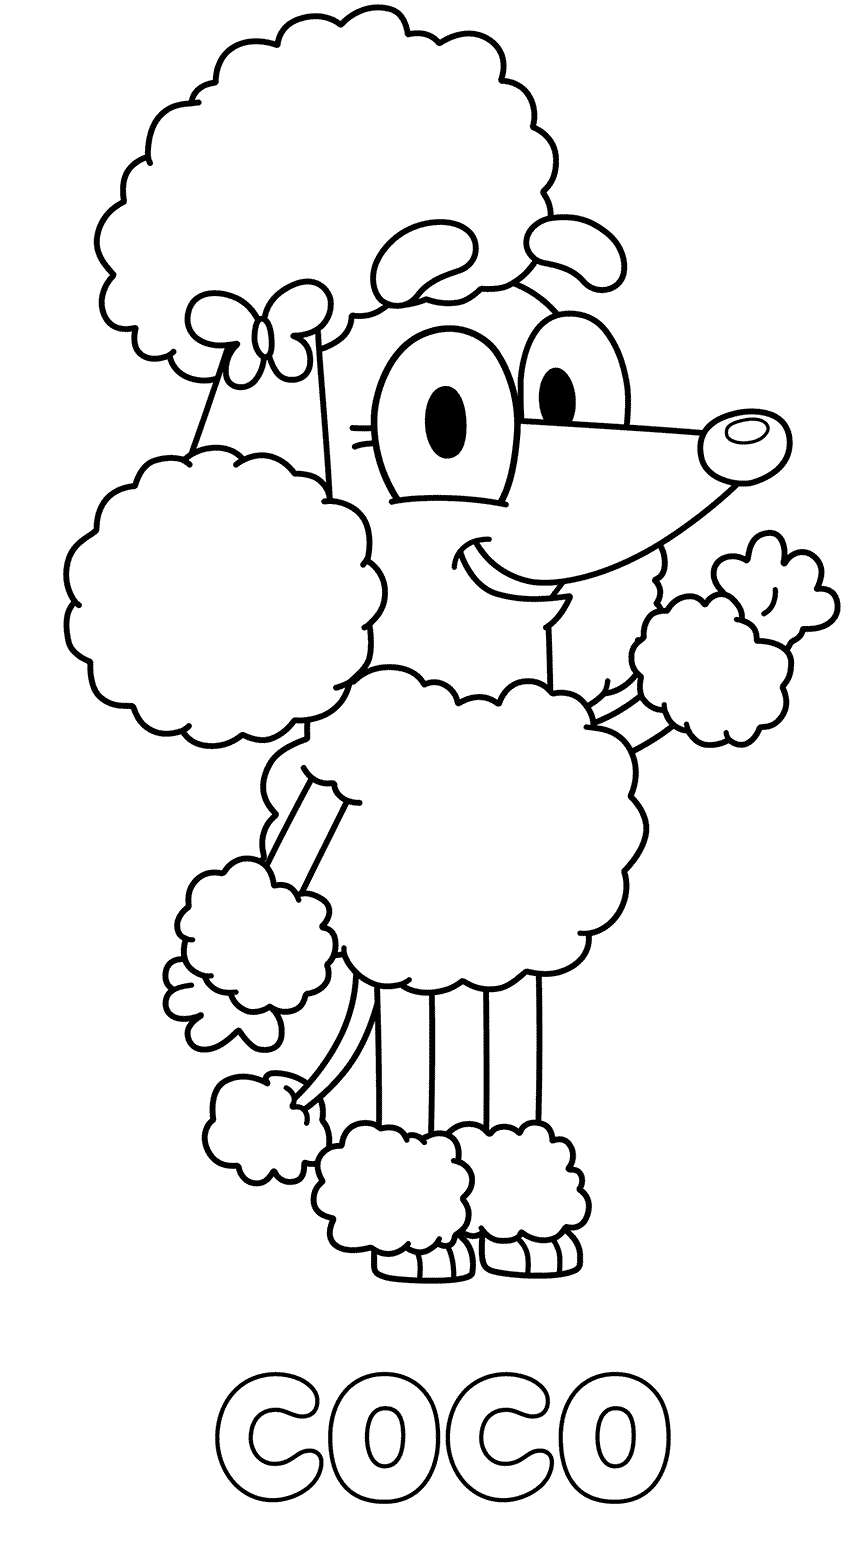 Coco Bluey Coloring Pages